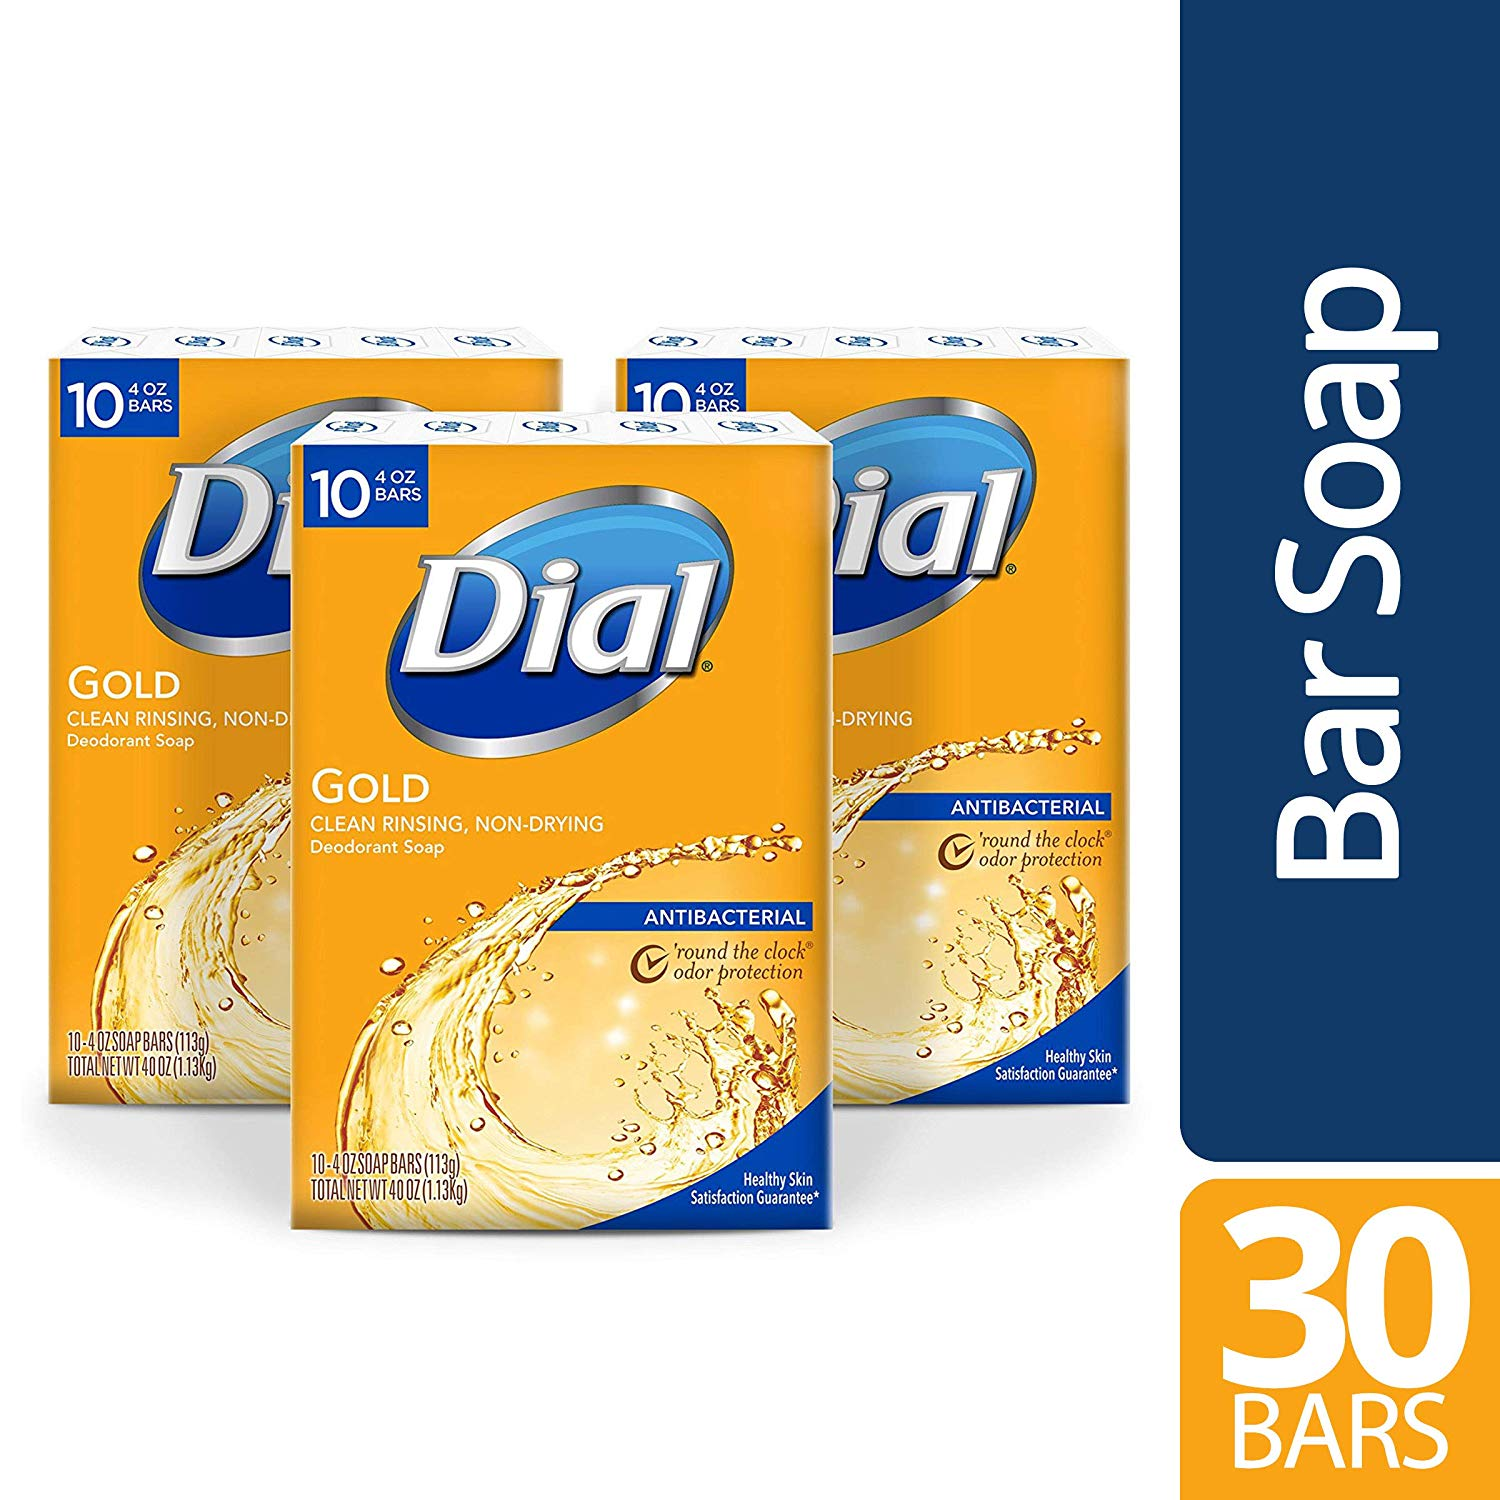 30 Dial Antibacterial Soap Bars only $10.40 with coupon! (was $14.85)